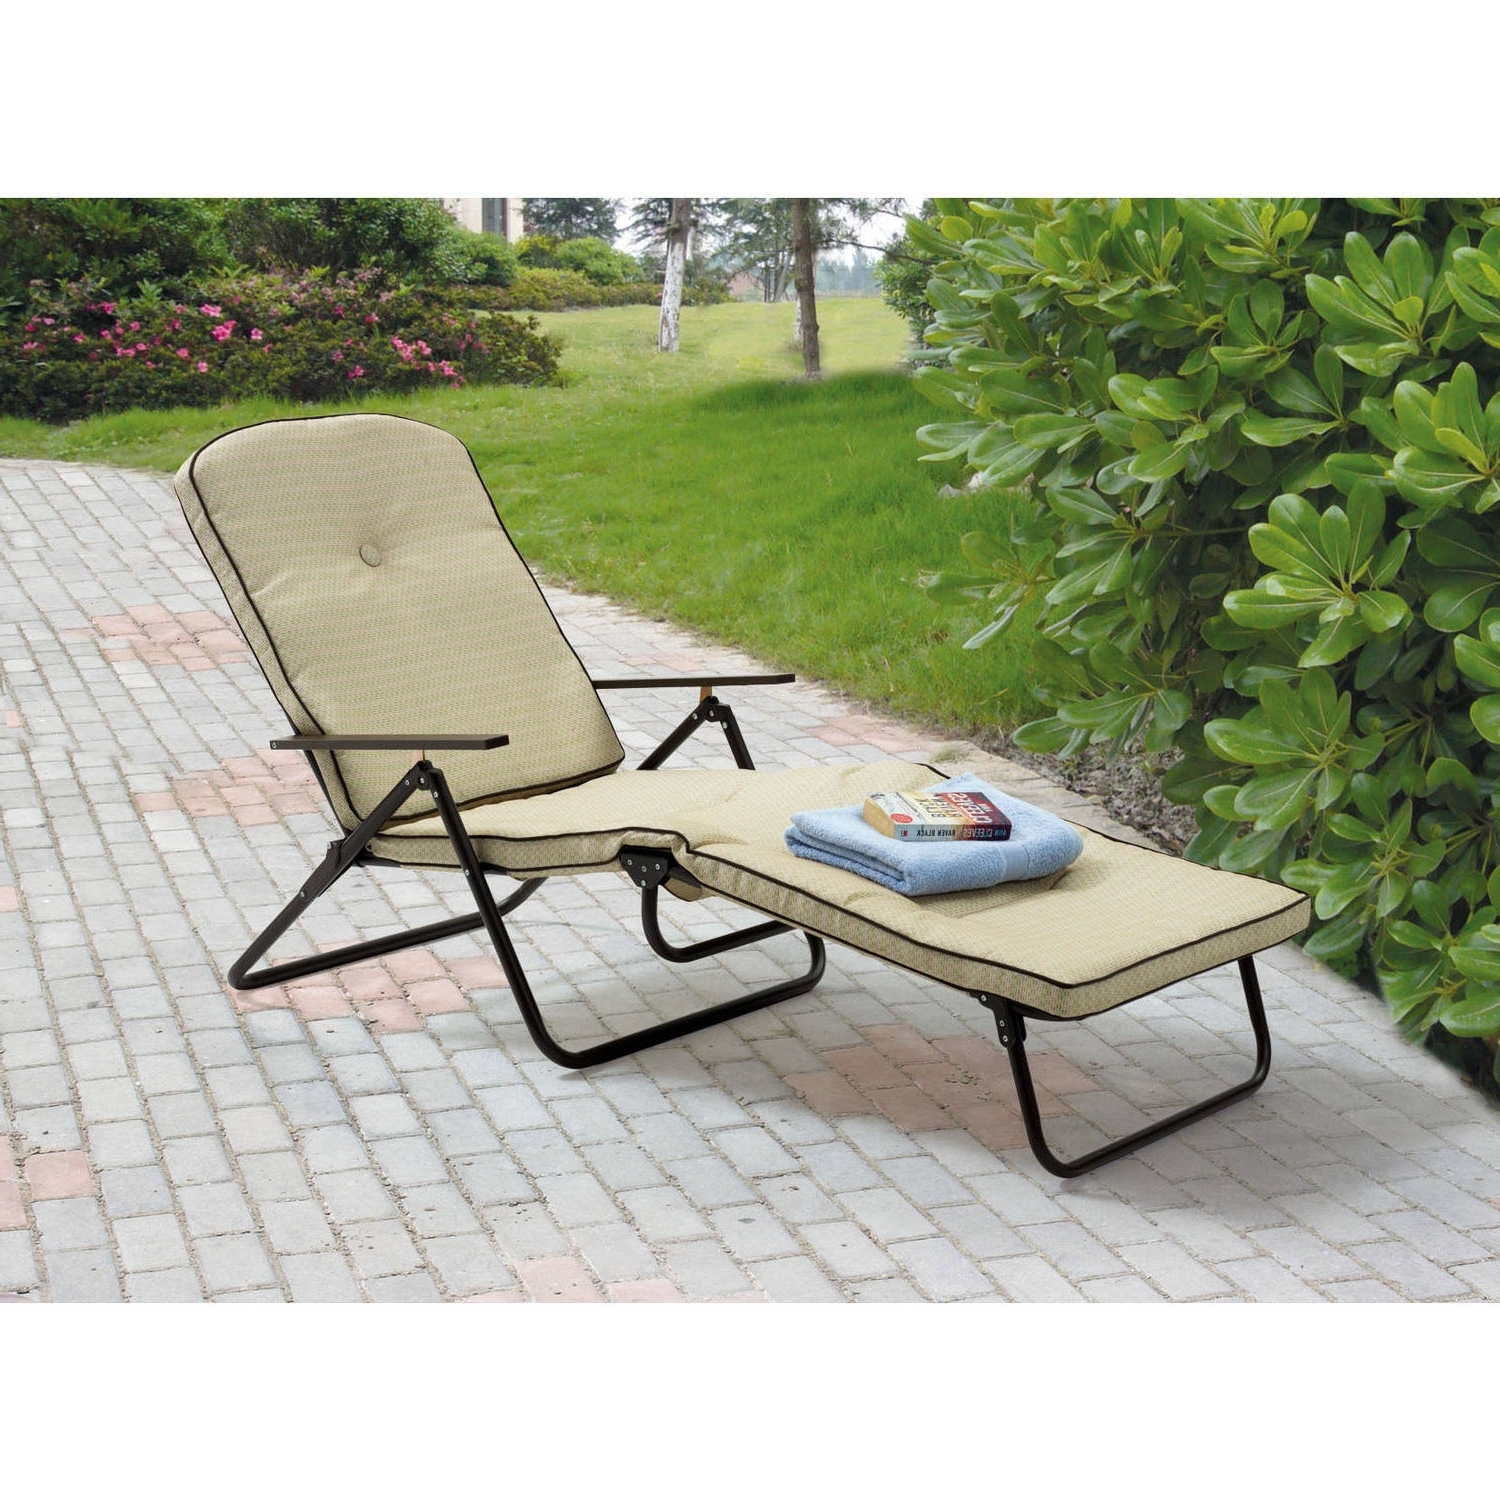 Outdoor Folding Chaise Lounges Within Trendy Mainstays Sand Dune Outdoor Padded Folding Chaise Lounge, Tan (View 14 of 15)